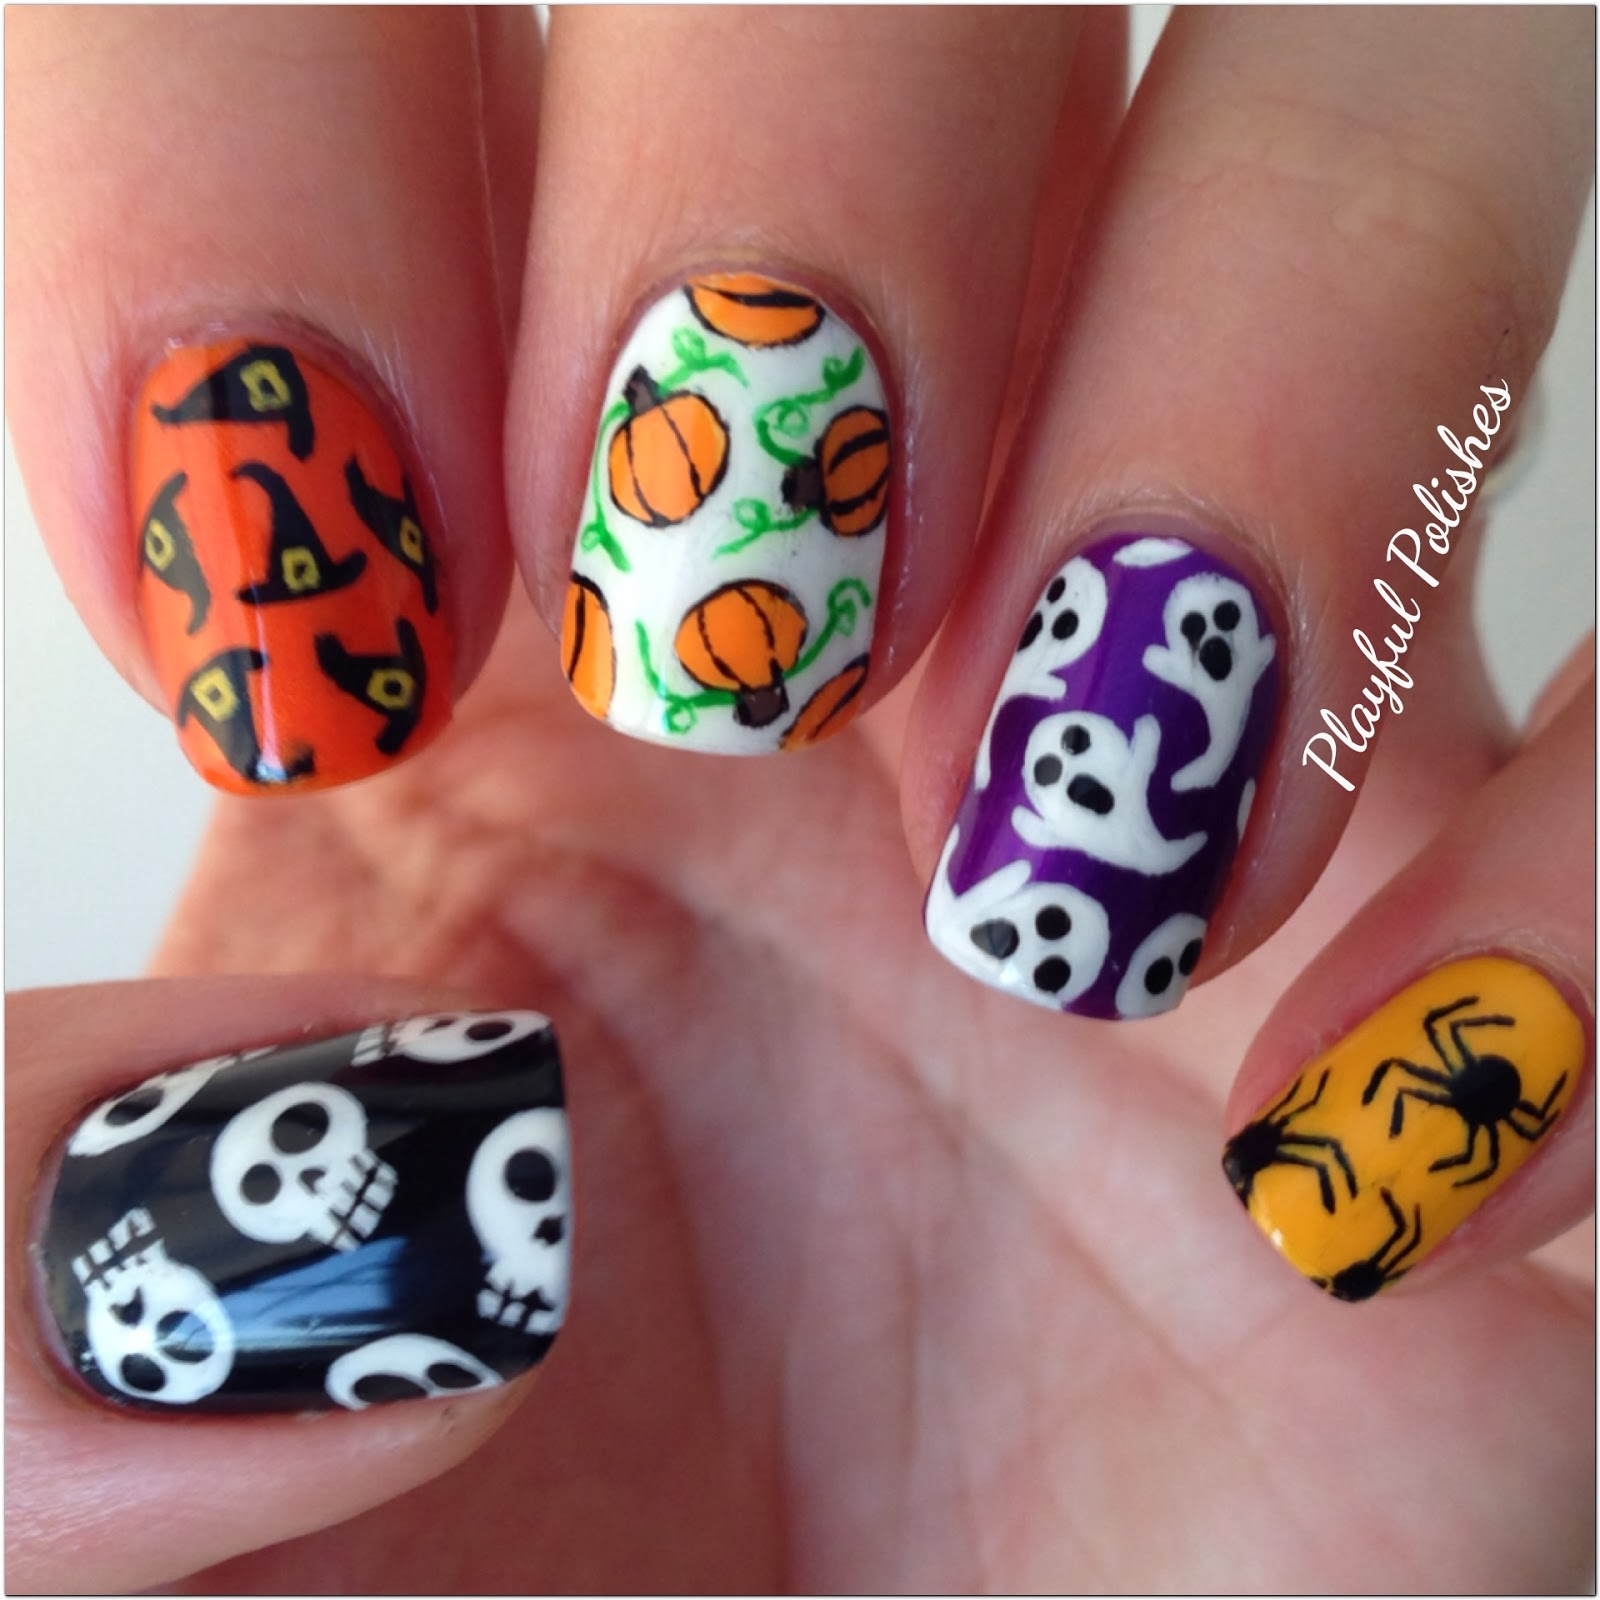 Playful Polishes: HALLWEEN NAIL DESIGNS